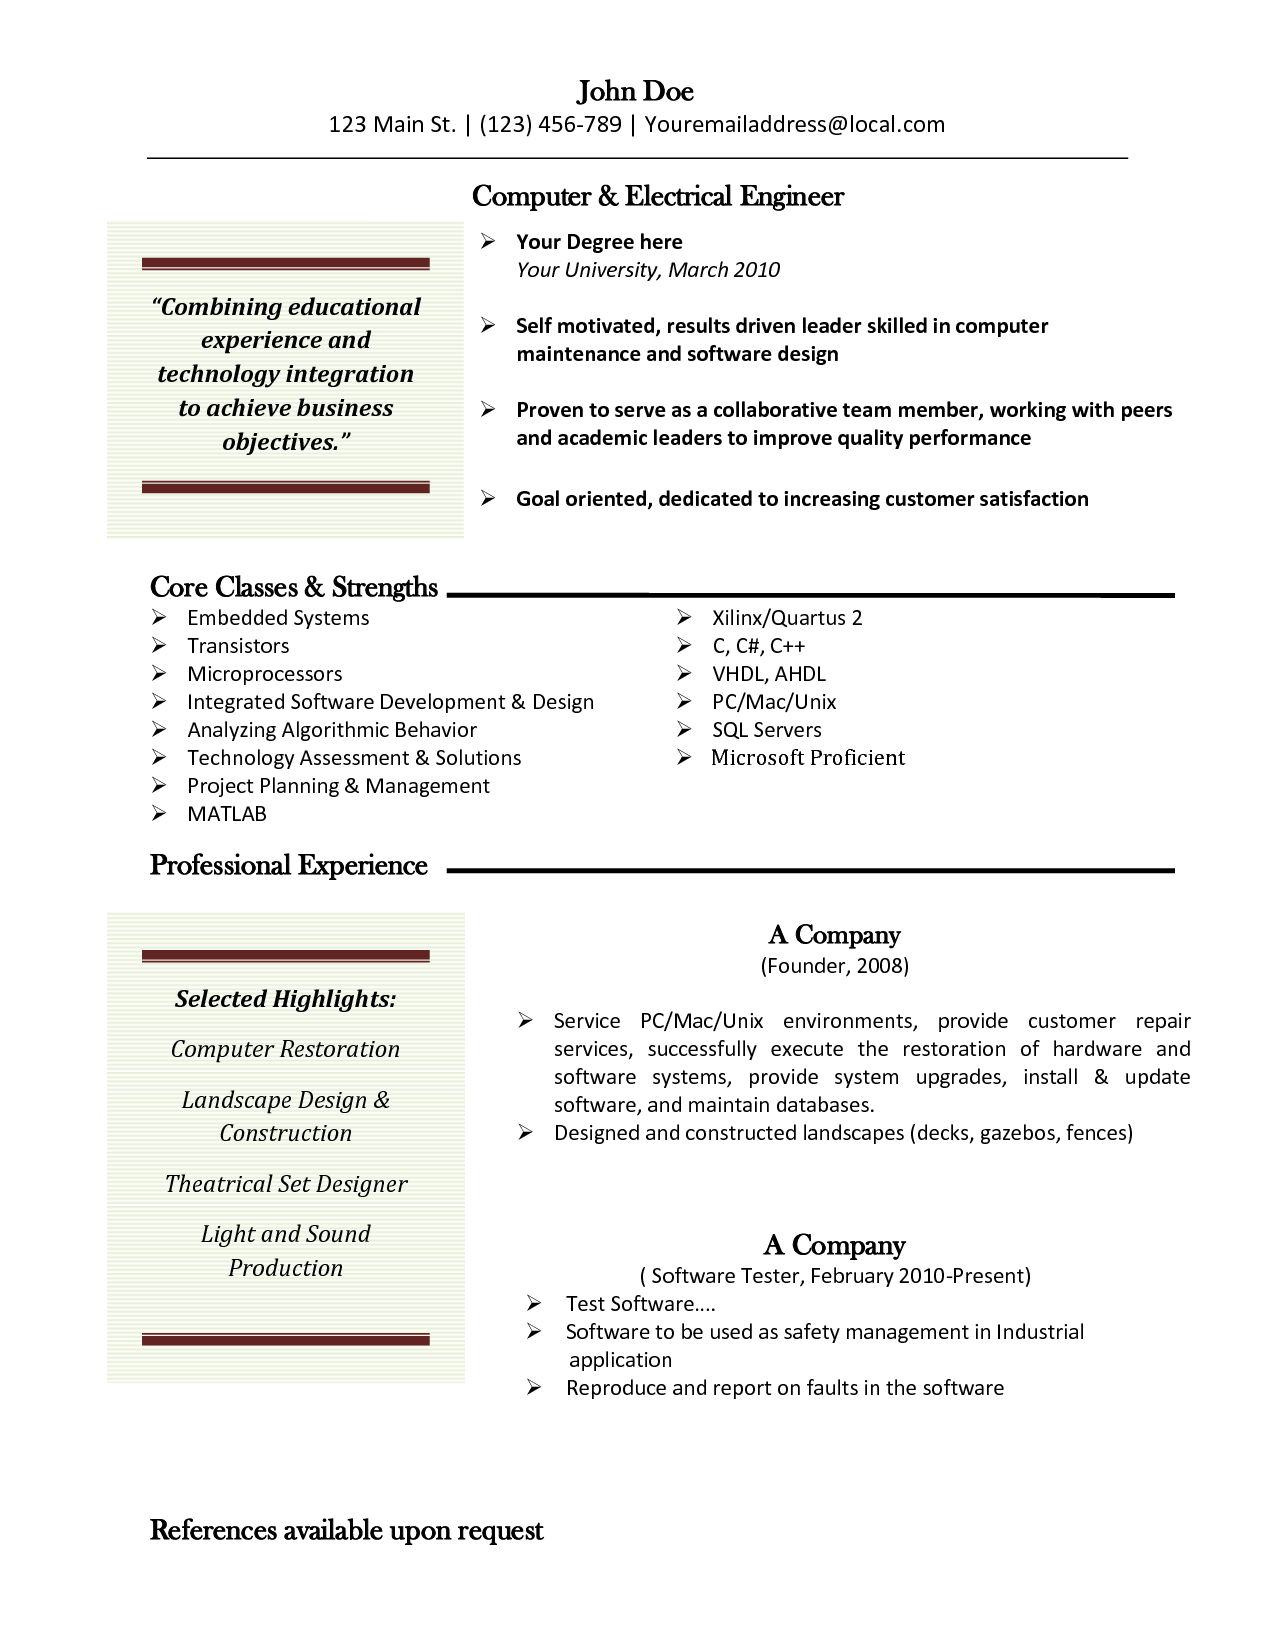 Microsoft Resume Template Download Prepossessing Freeresumetemplatesformaccqjykibi 1275×1650  Cv